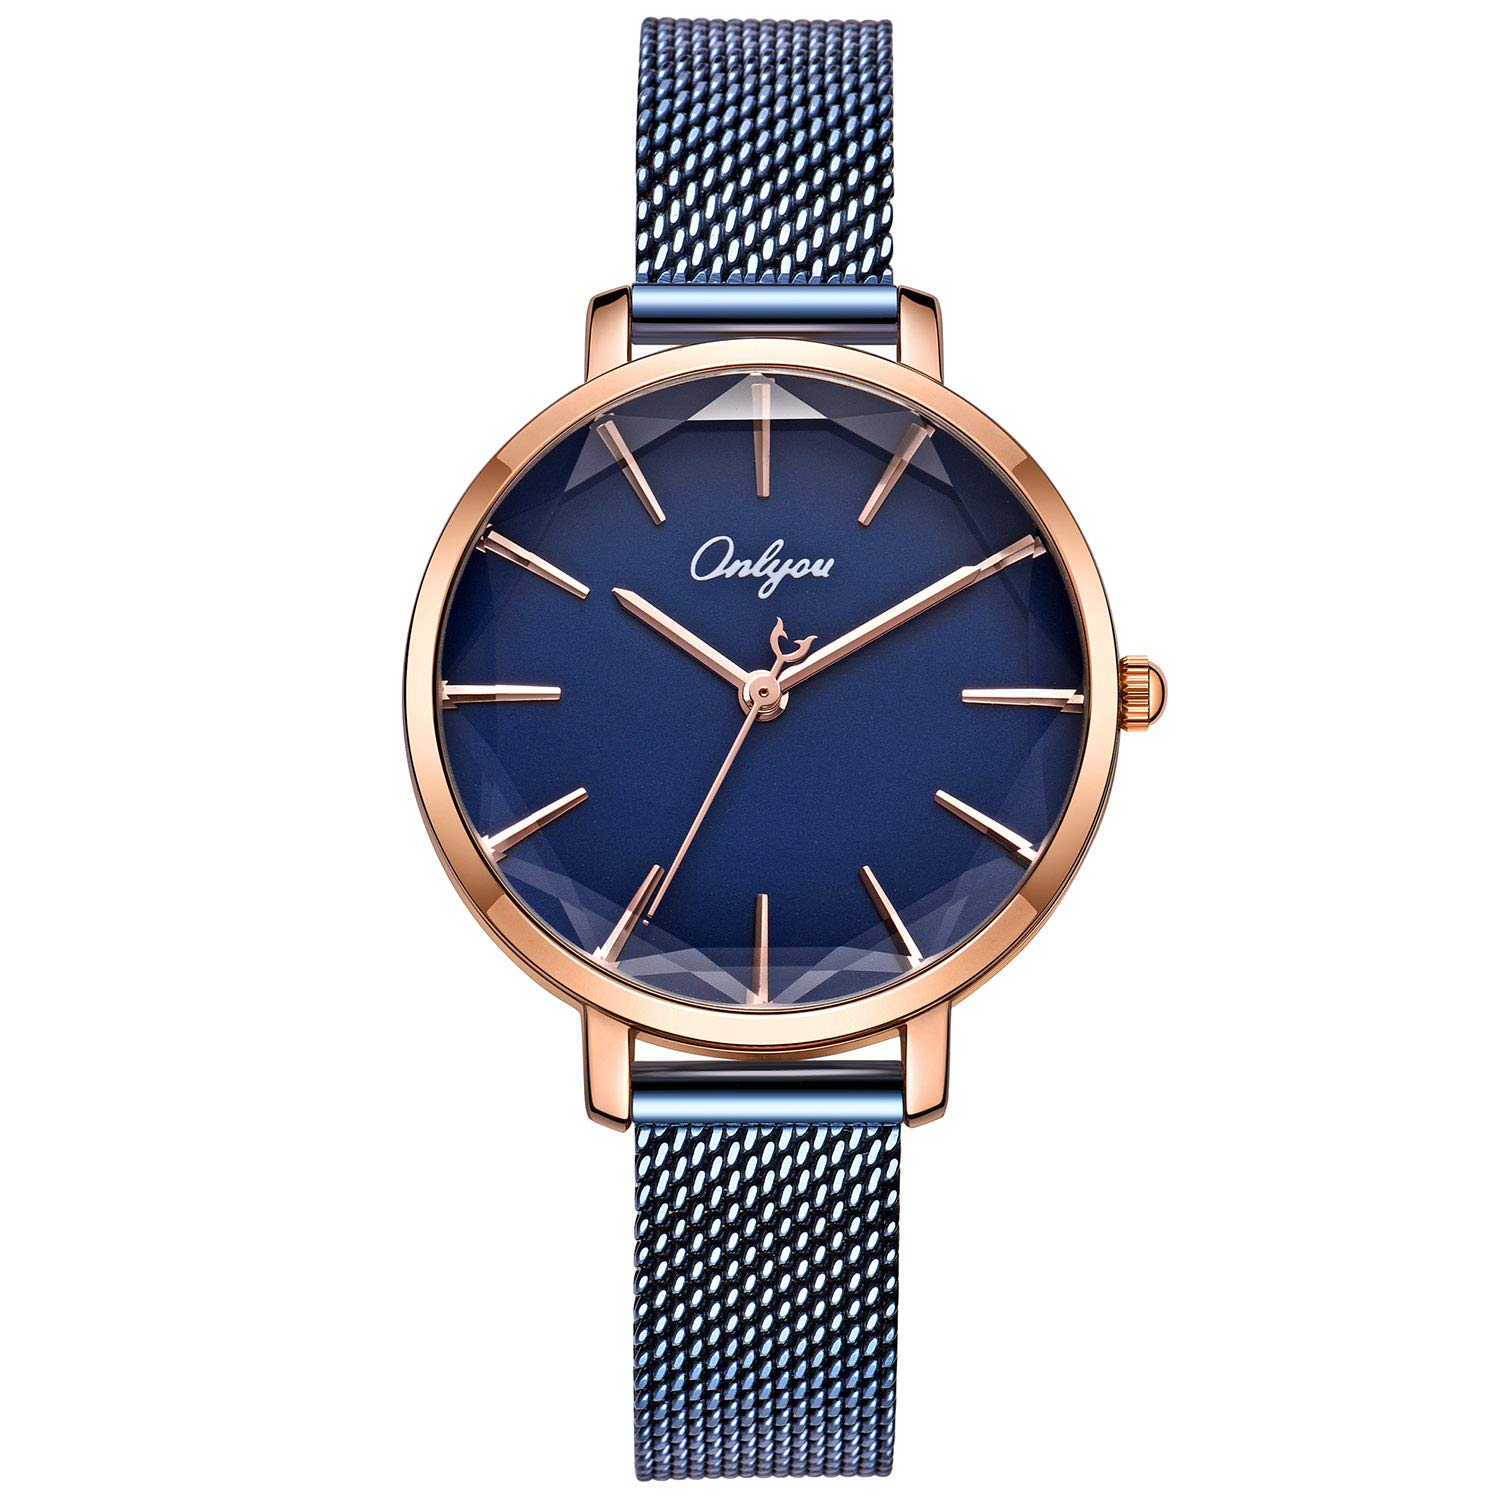 ONLYOU Women's Fashion Watches,Unique Face Design and 30M Waterproof,Analog Quartz Wristwatches with Stainless Steel Mesh Band (Blue) by onlyou (Image #1)